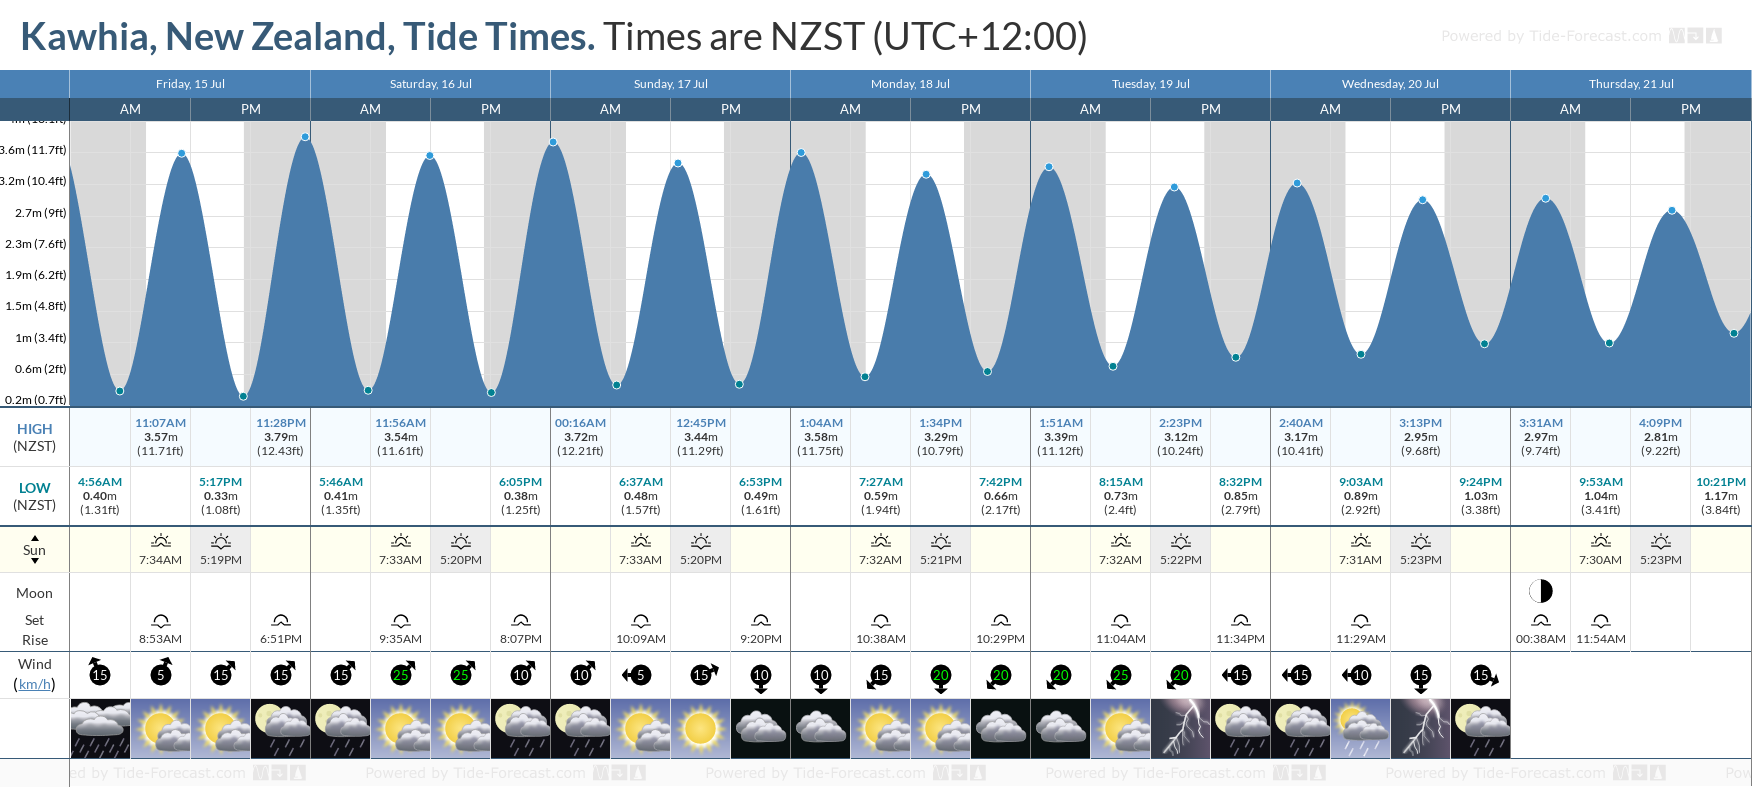 Kawhia, New Zealand Tide Chart including high and low tide tide times for the next 7 days